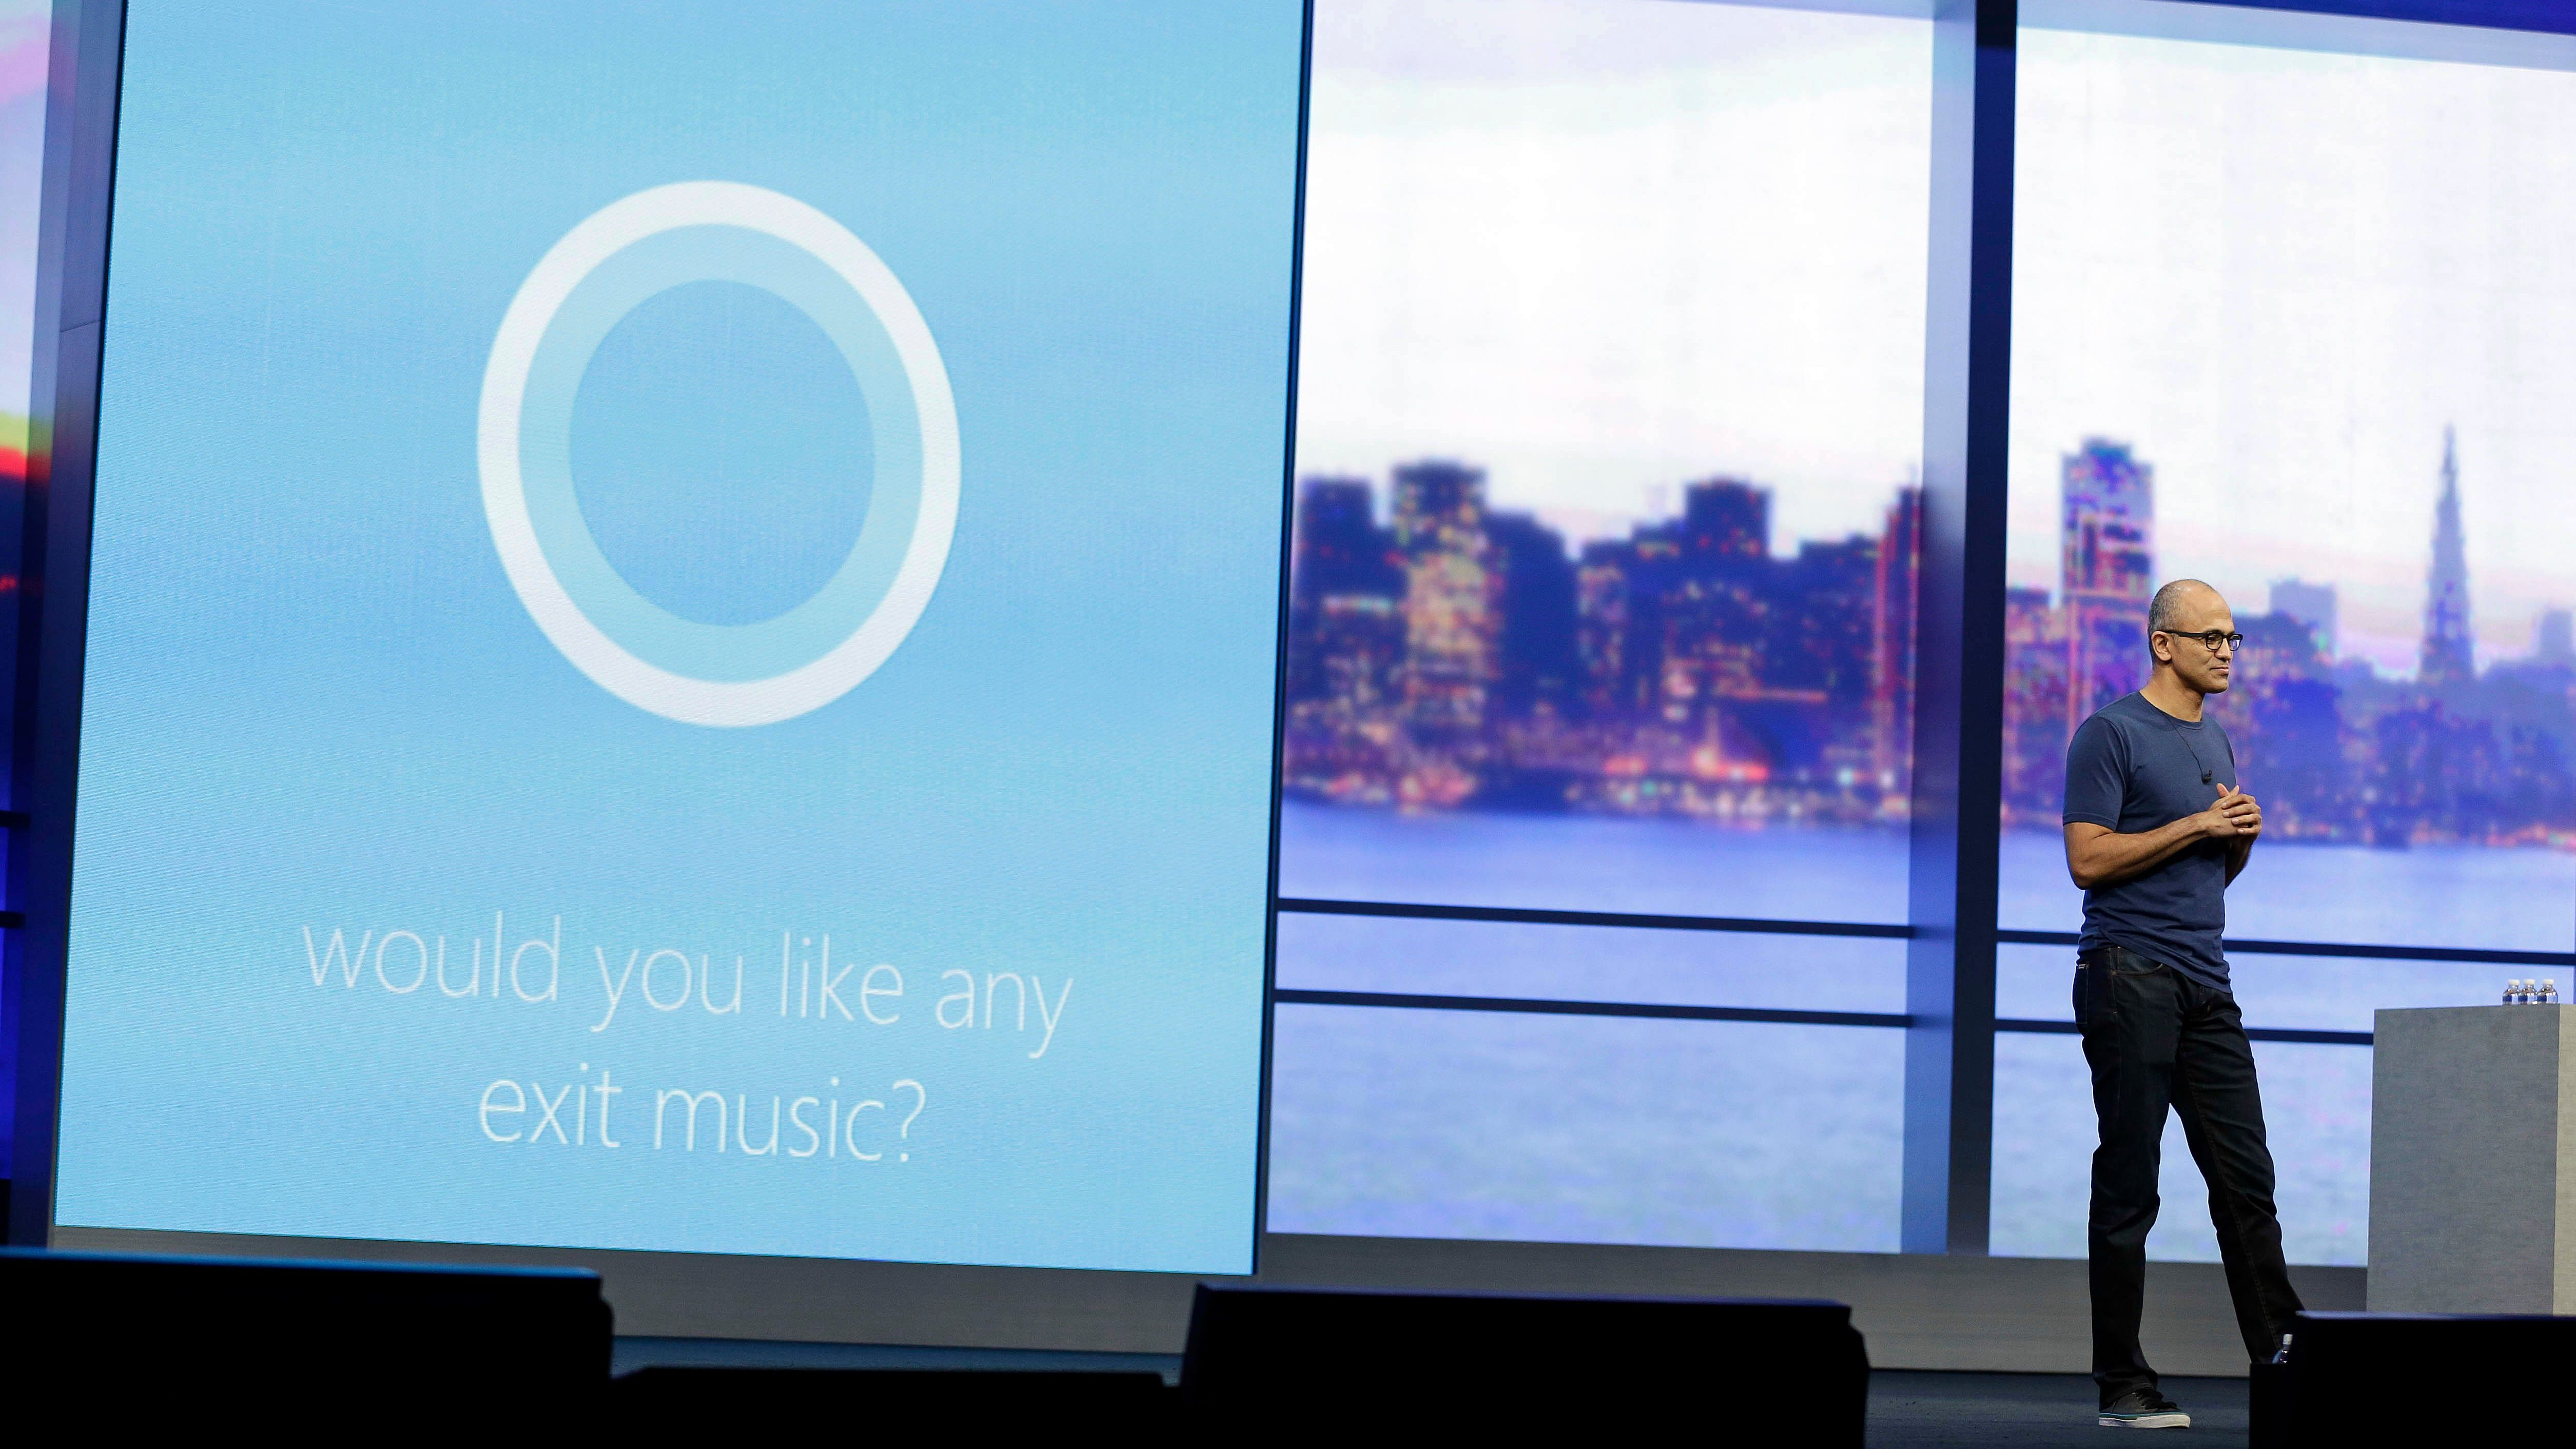 Microsoft CEO Satya Nadella carries on a conversation with the new personal assistant Cortana at the end of his keynote address to the Build Conference Wednesday, April 2, 2014, in San Francisco. Microsoft kicked off its annual conference for software developers, with new updates to the Windows 8 operating system and upcoming features for Windows Phone and Xbox. (AP Photo/Eric Risberg)